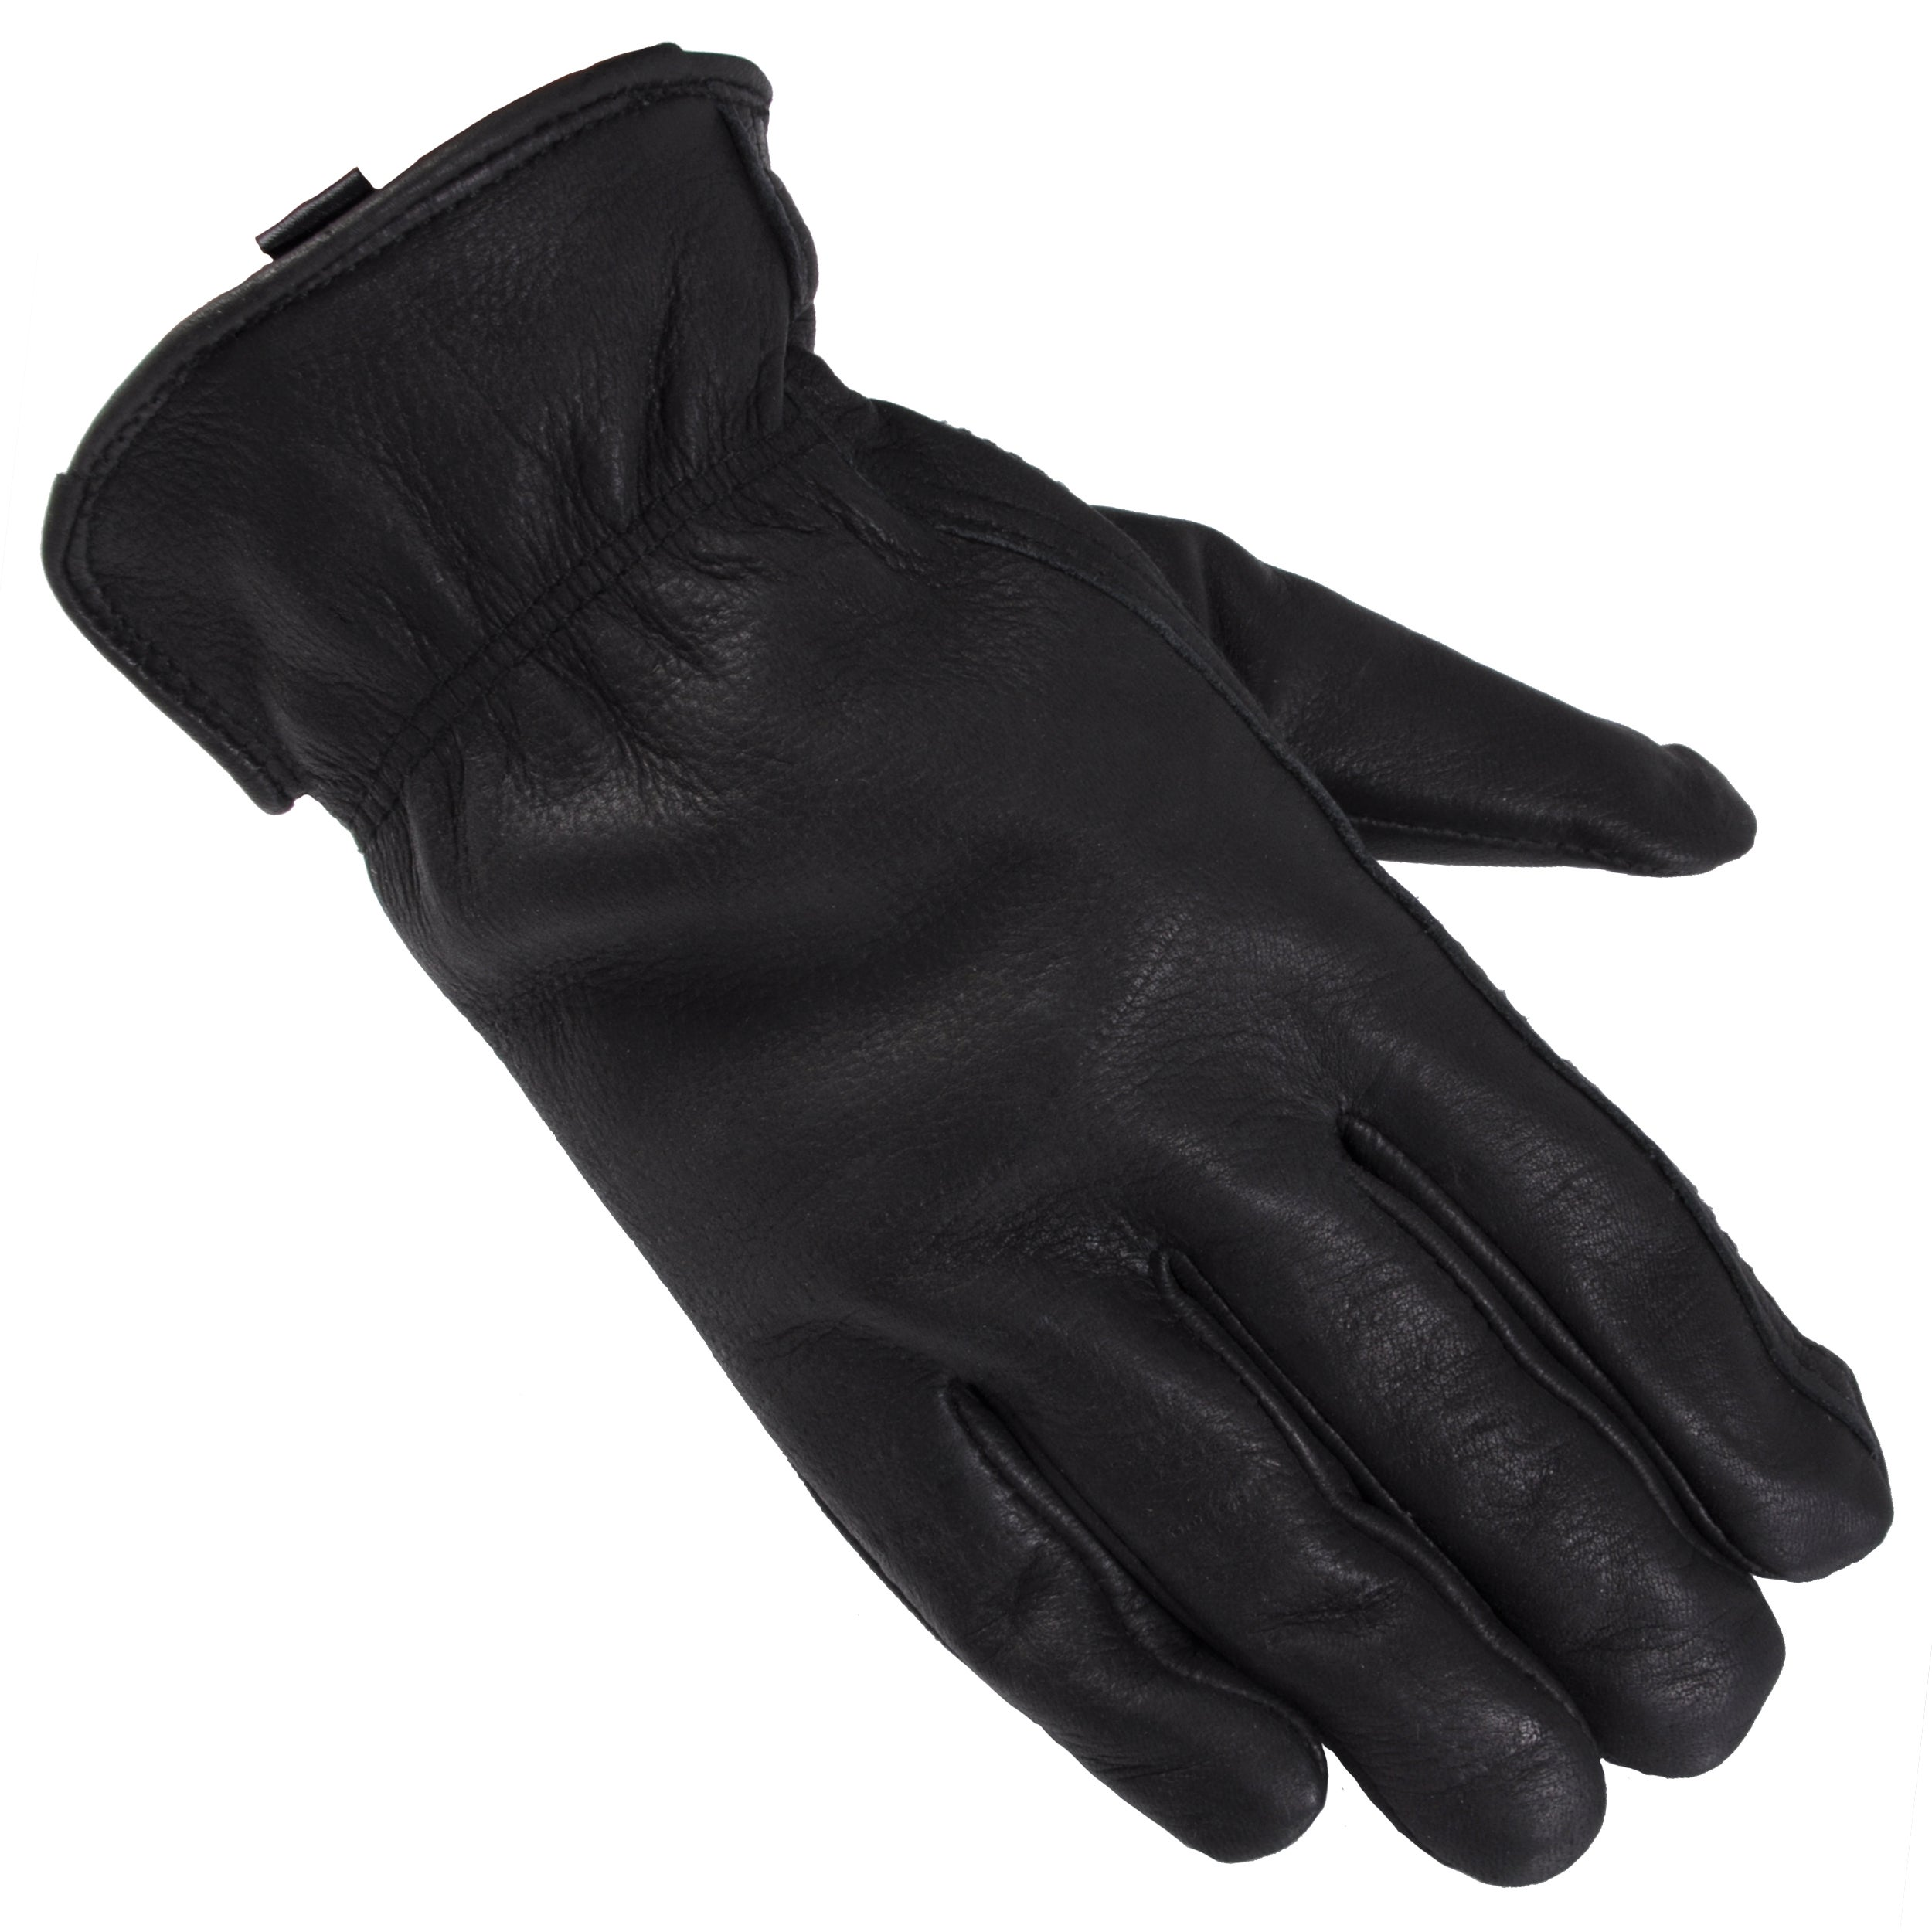 Womens leather gloves thinsulate lining - Journee Collection Women S Deerskin Leather Thinsulate Lined Gloves